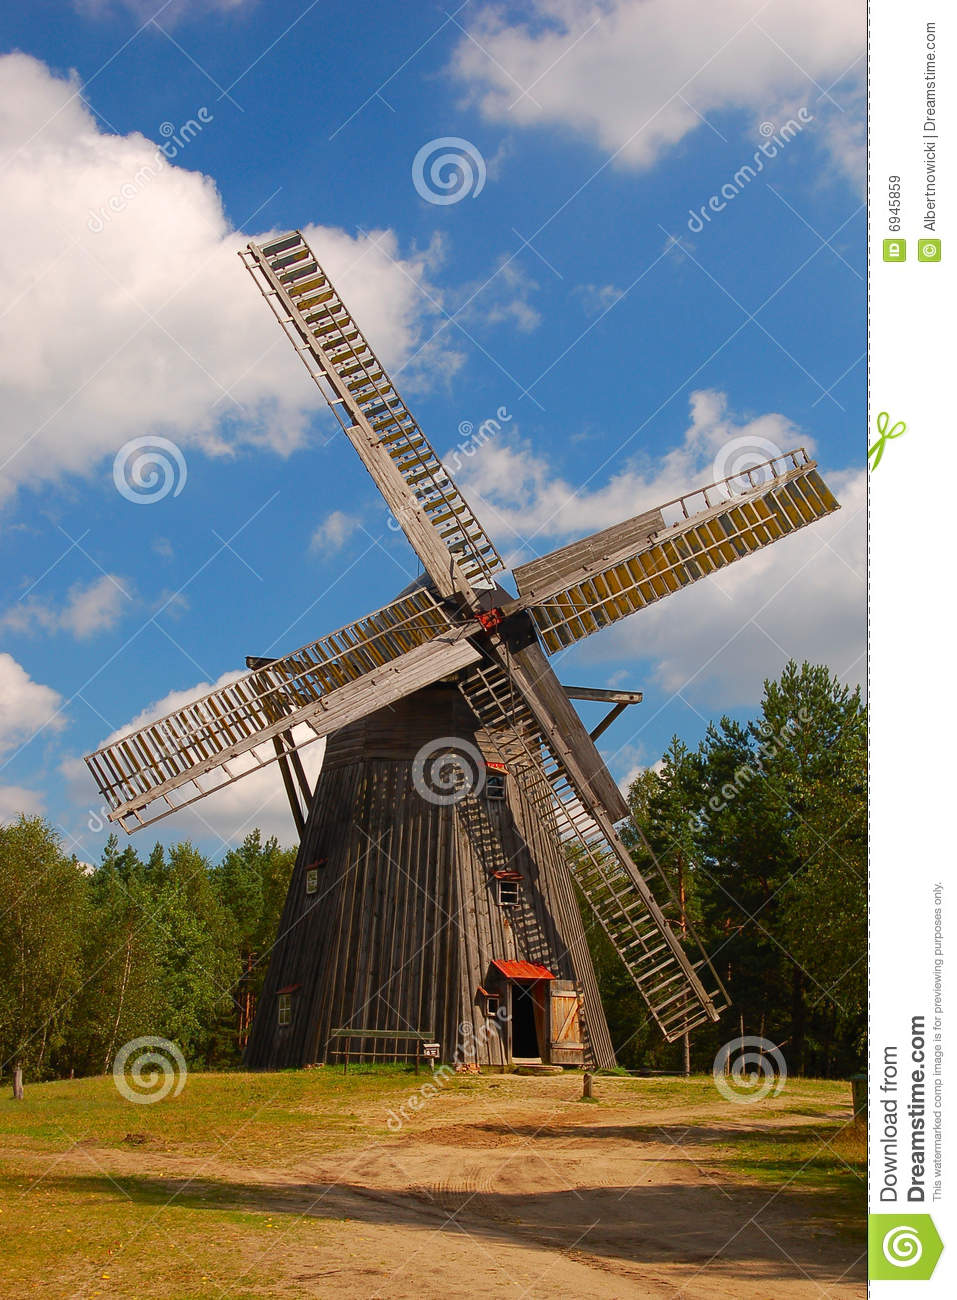 Windmill in polish countryside